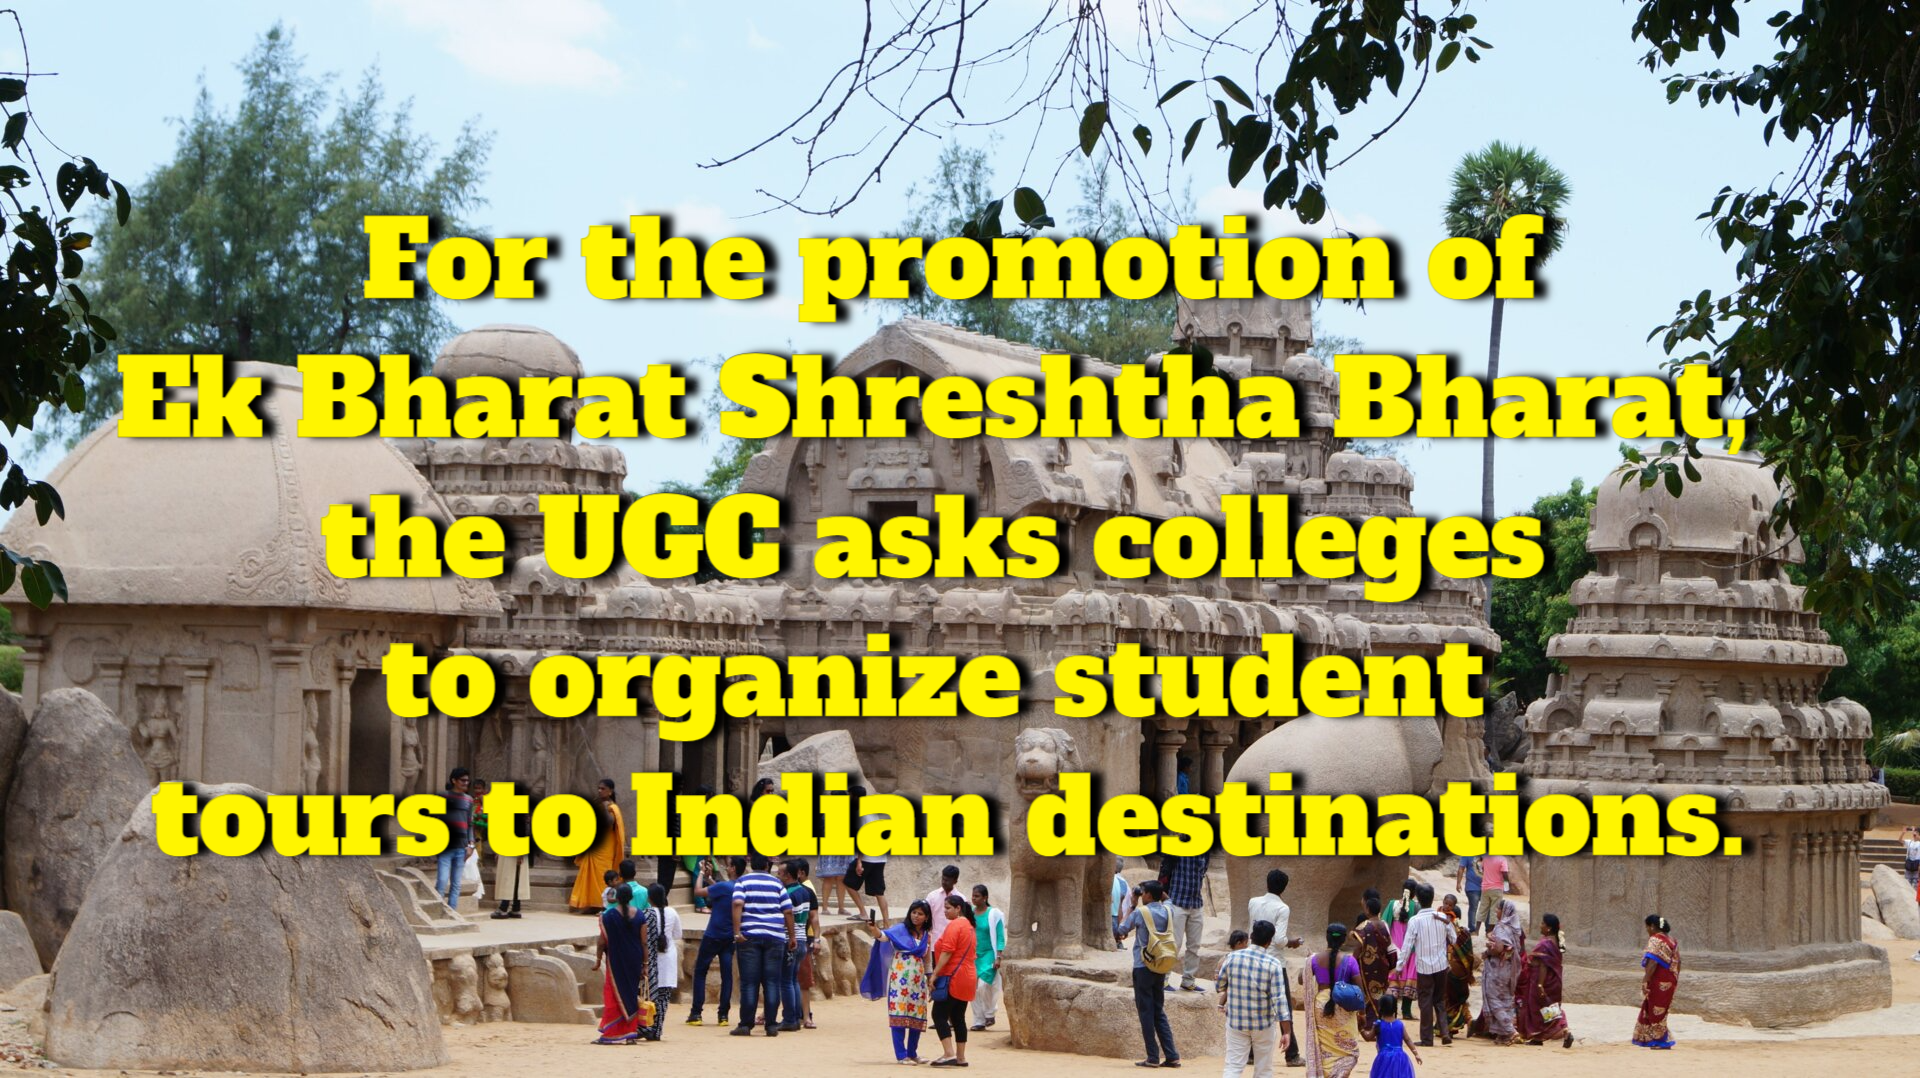 To promote Ek Bharat Shreshtha Bharat, UGC requests that colleges arrange student trips to Indian locations